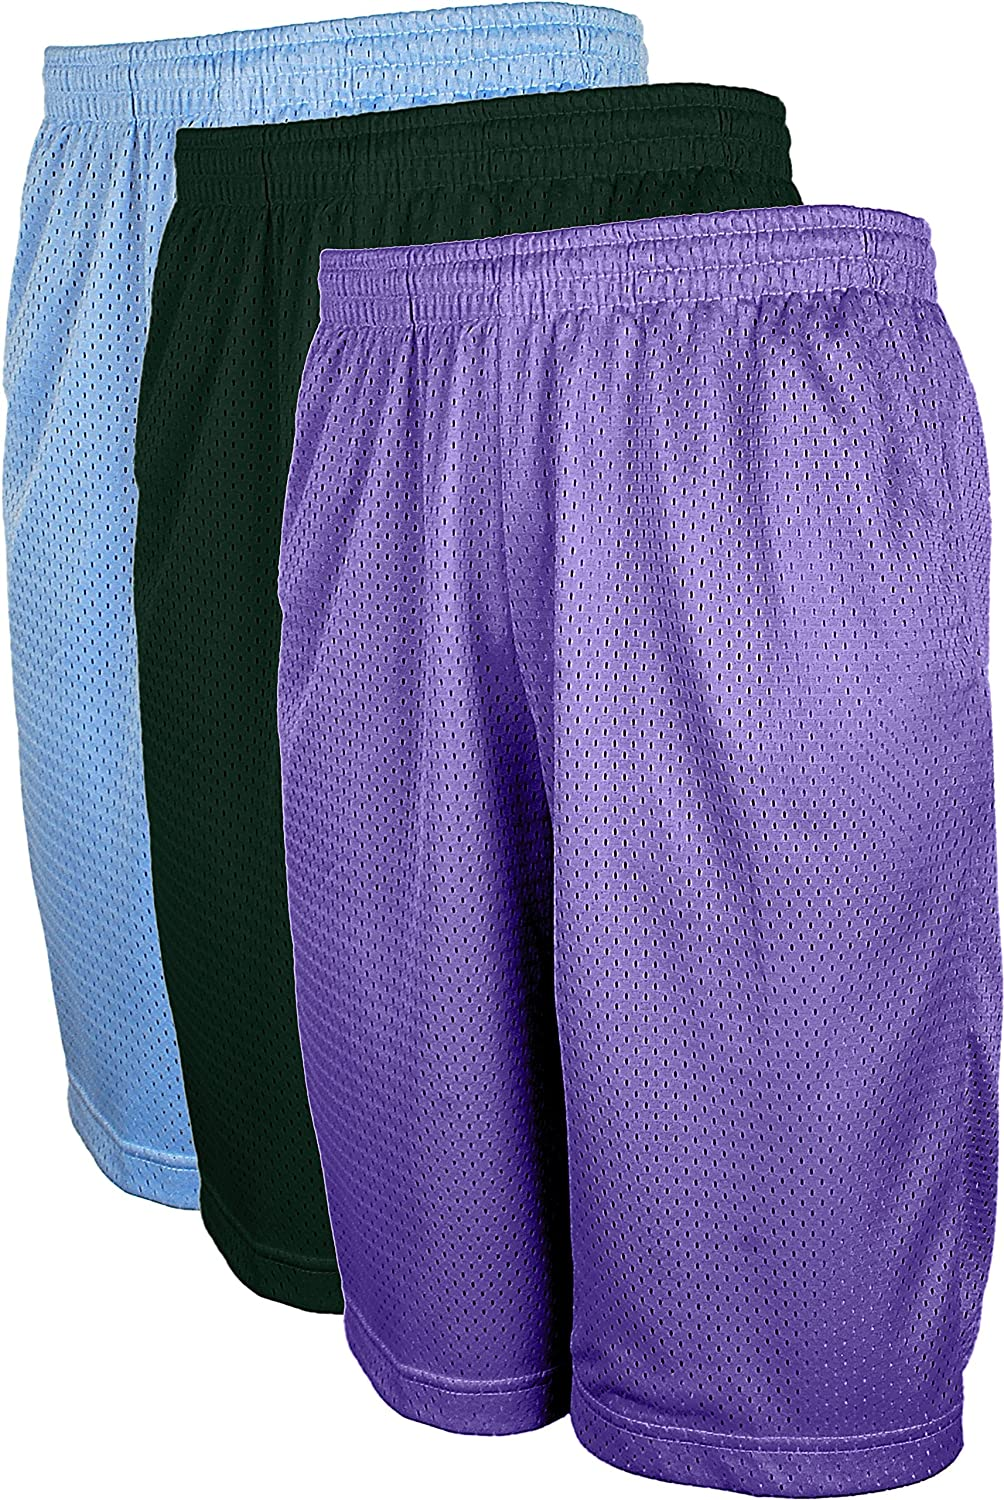 Top Legging Athletic Active Men's Workout Running Training Mesh Shorts with Pockets (S-5XL) TL-MESHSHORT